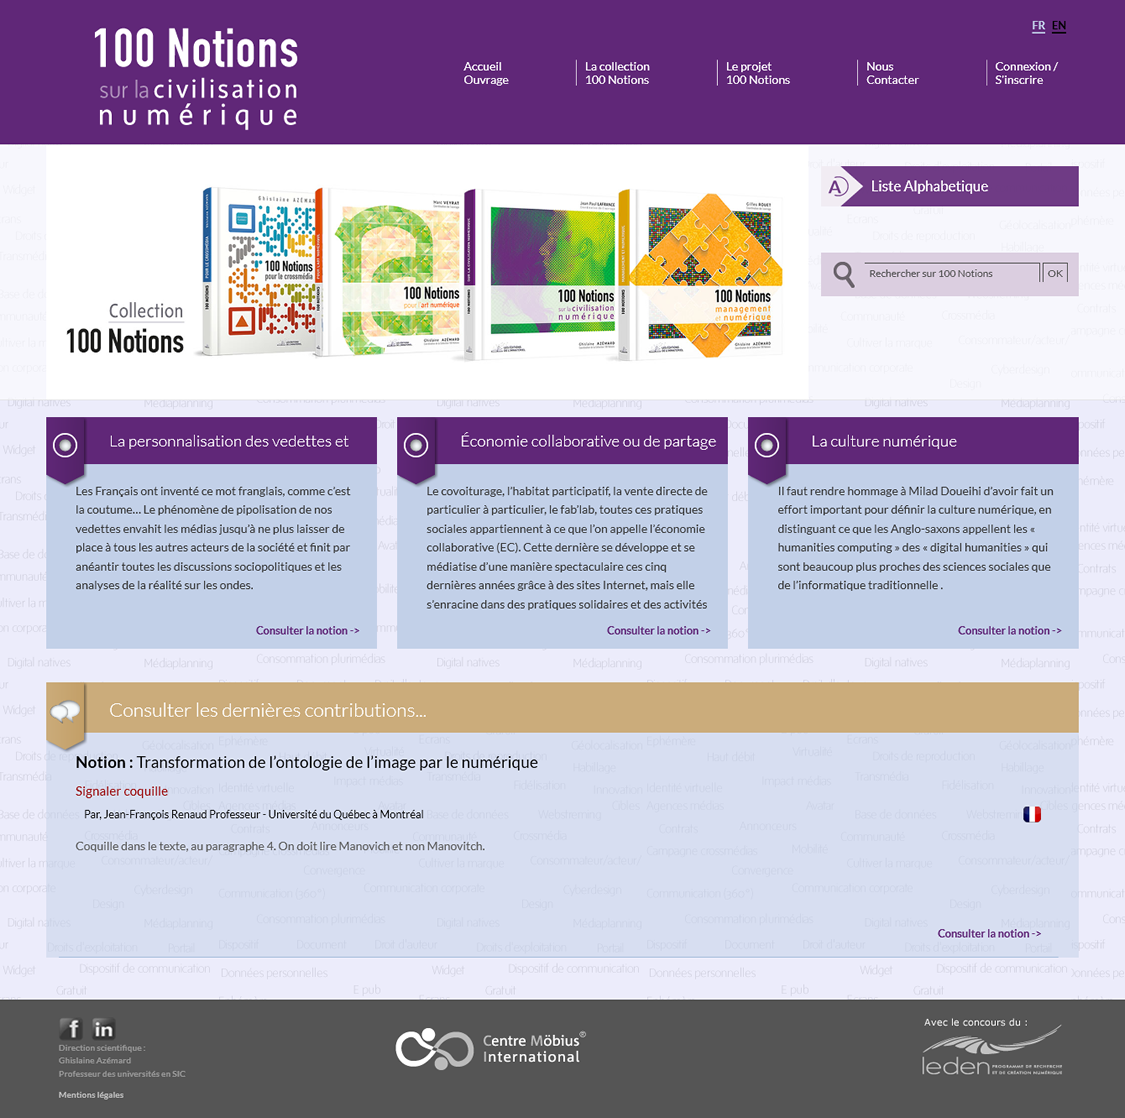 100 notions Civilization Numerique